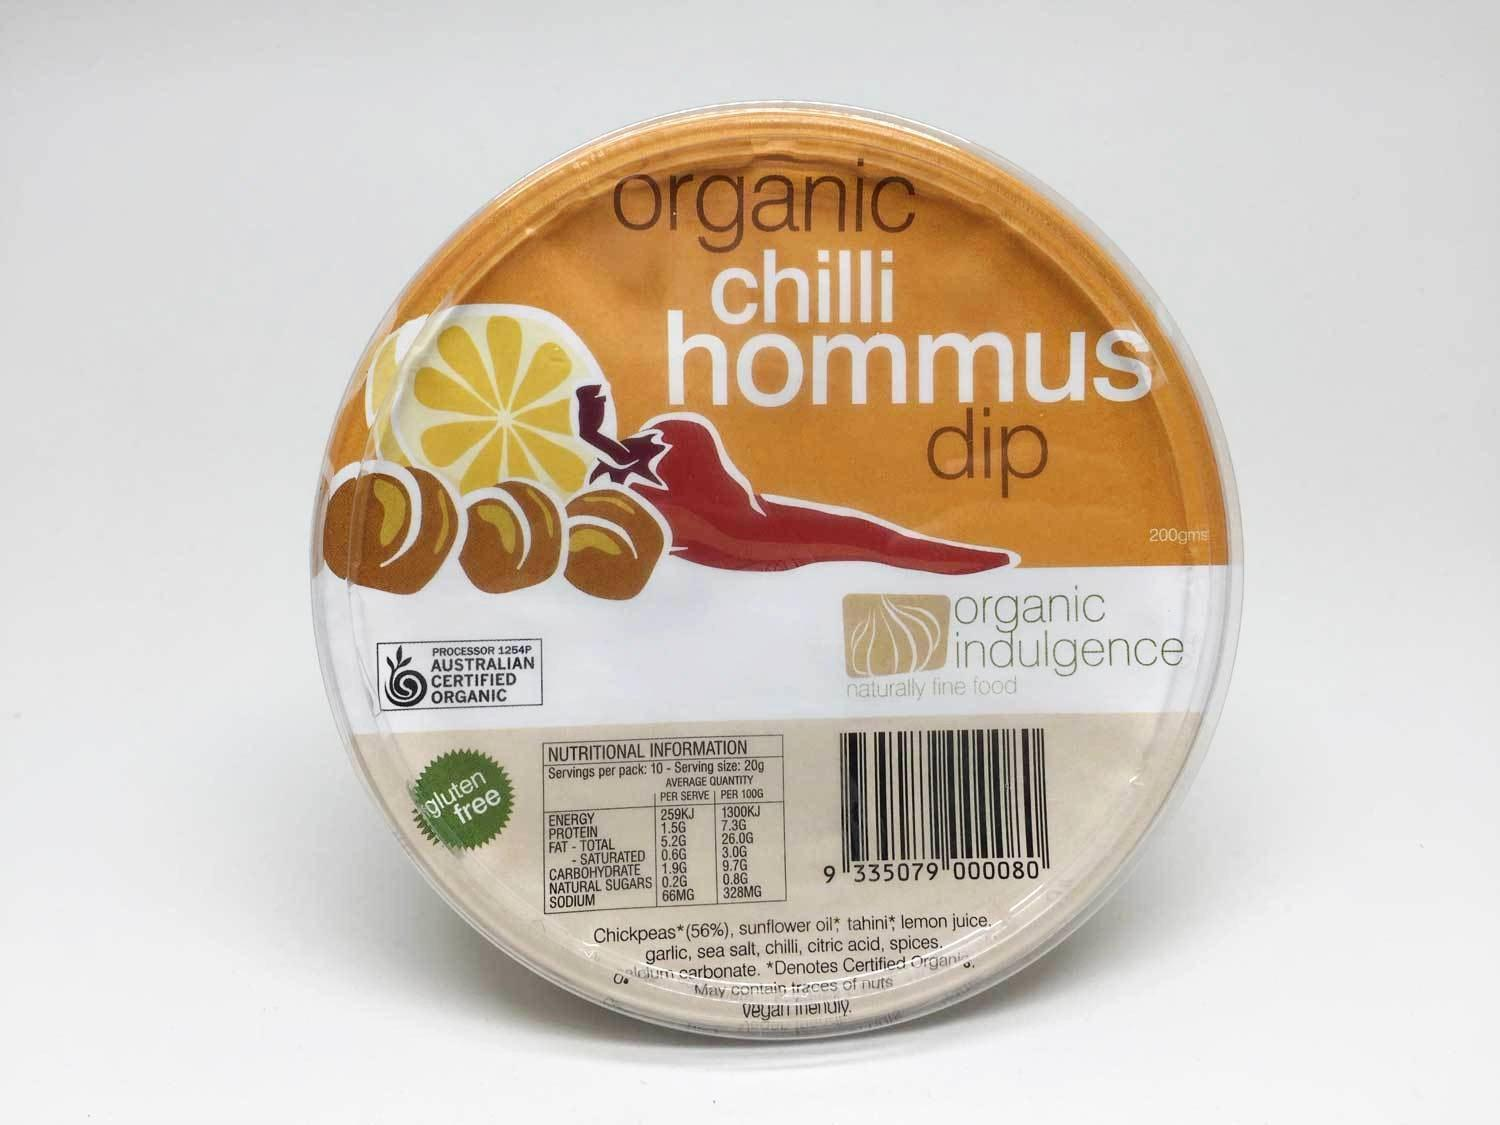 Organic Indulgence Chilli Hommus Dip 200g-Organic Indulgence-Fresh Connection